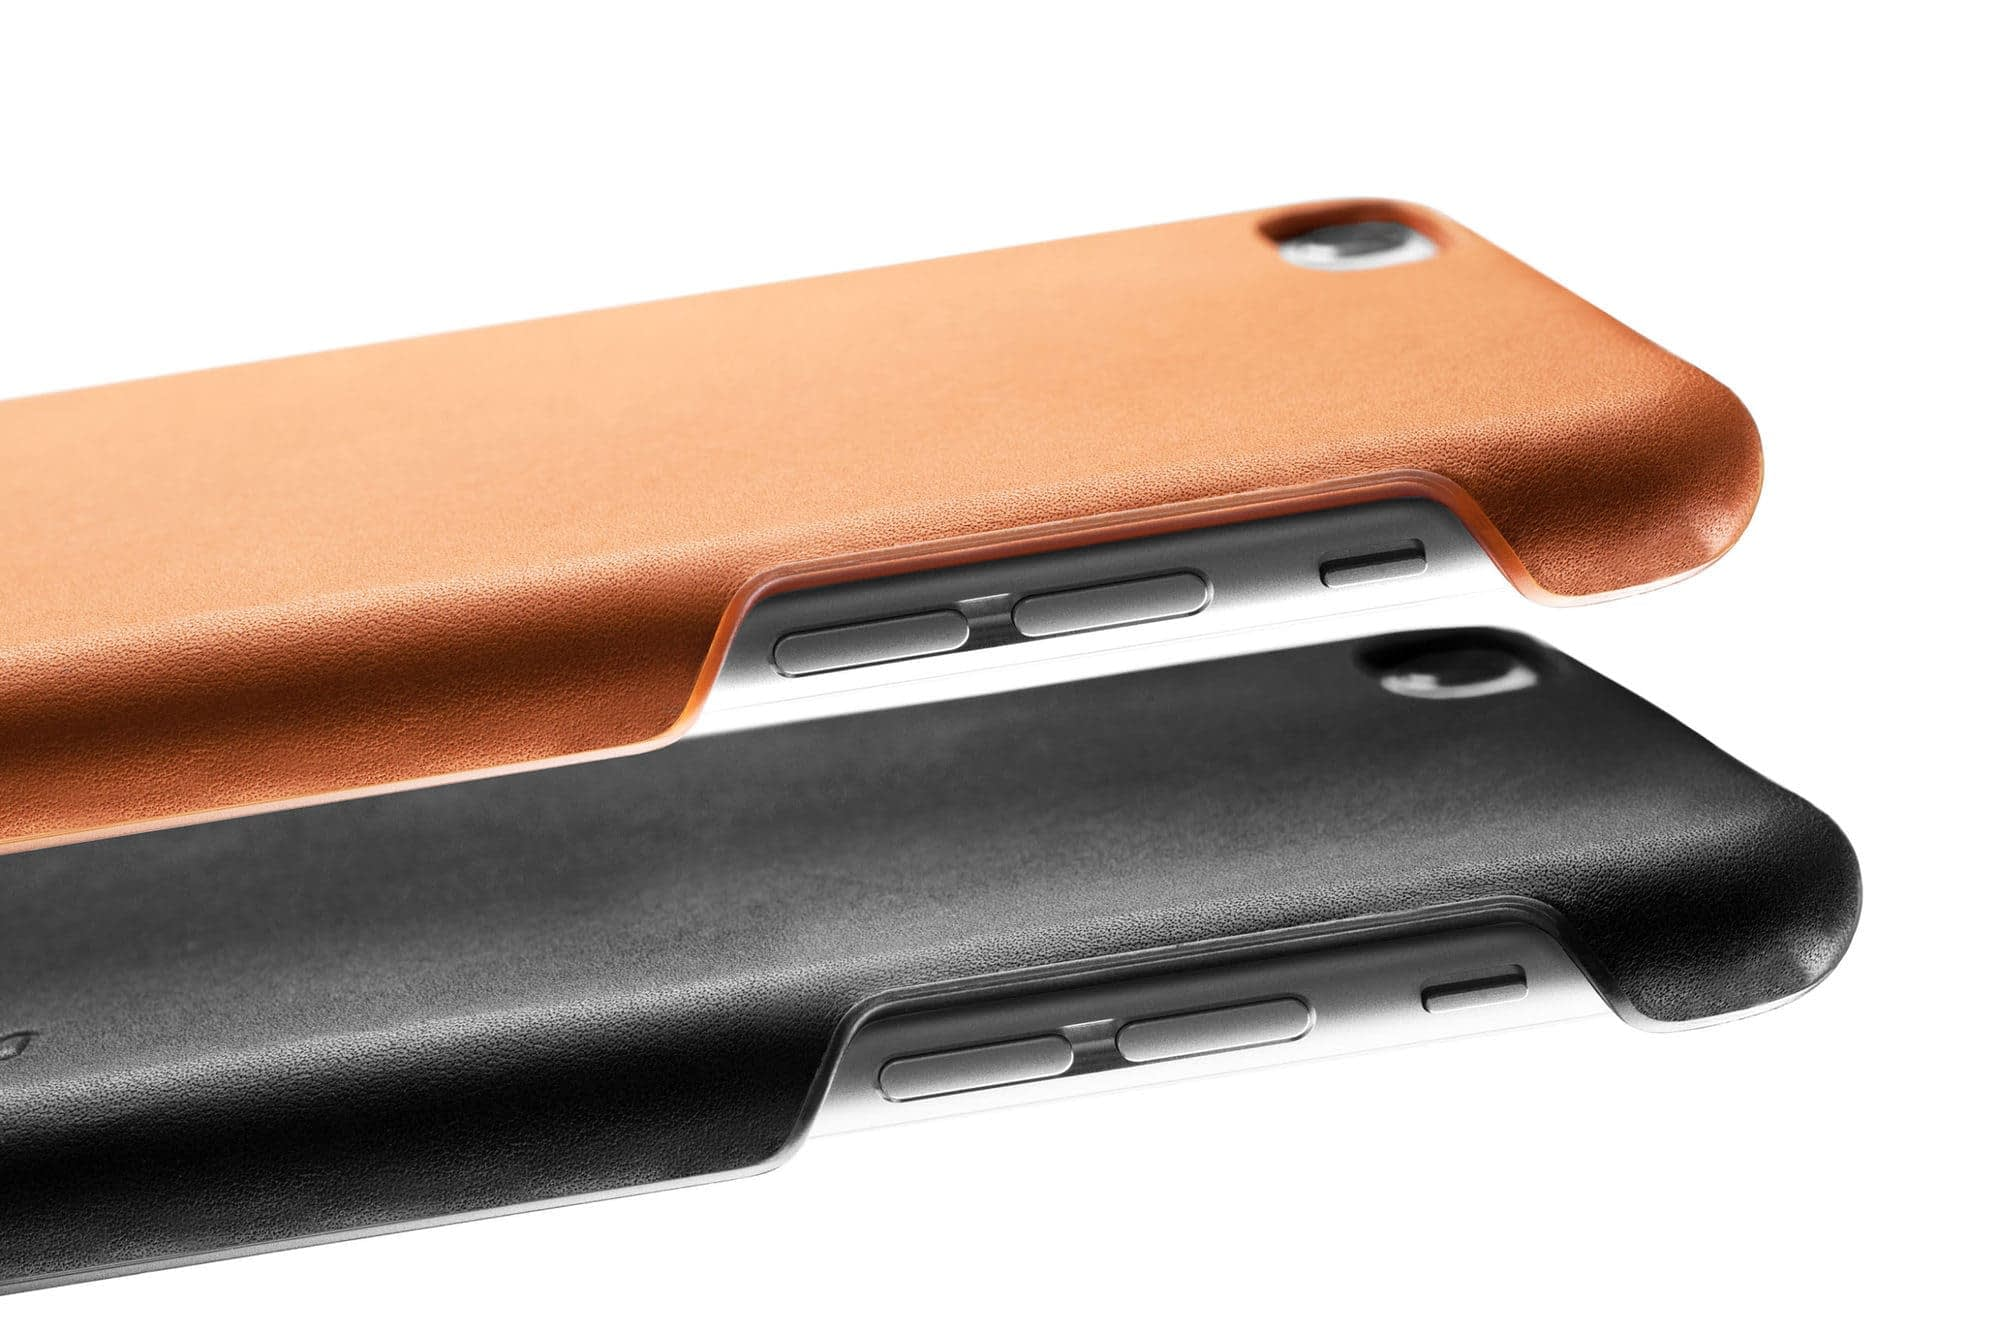 Leather Case for iPhone 6s Plus Tan 017 1